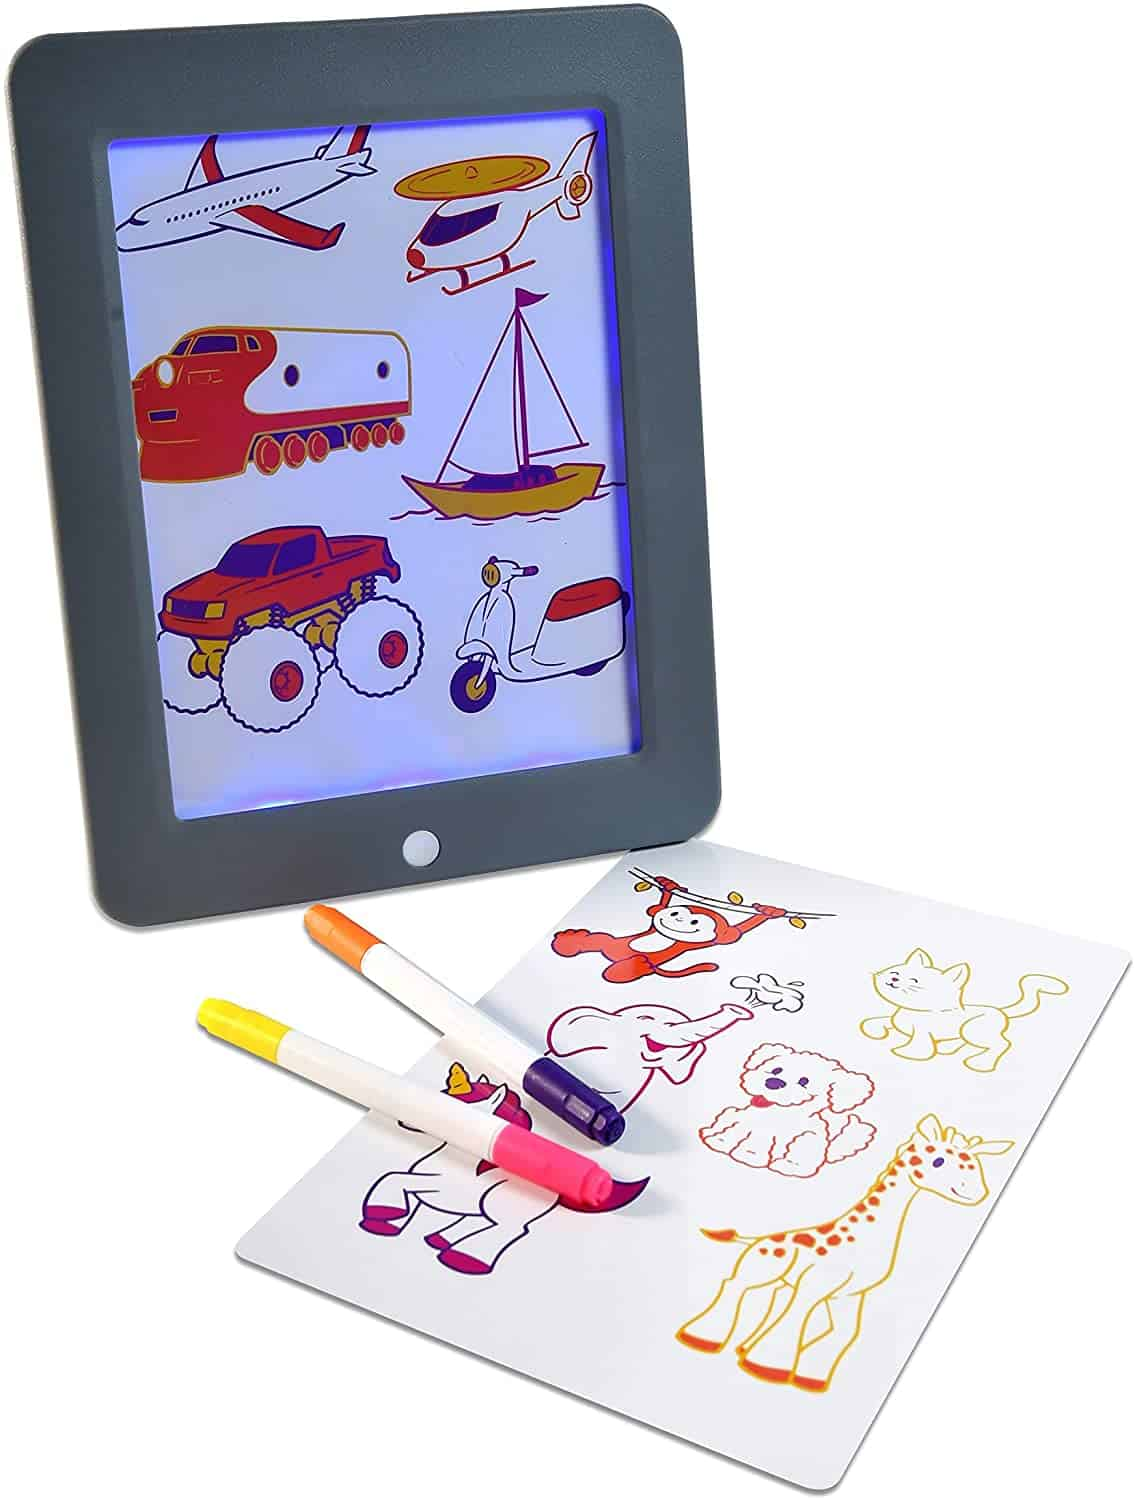 Best Glow Pad: Sunny Days Creativity Drawing Tablet (Ages 2-8)